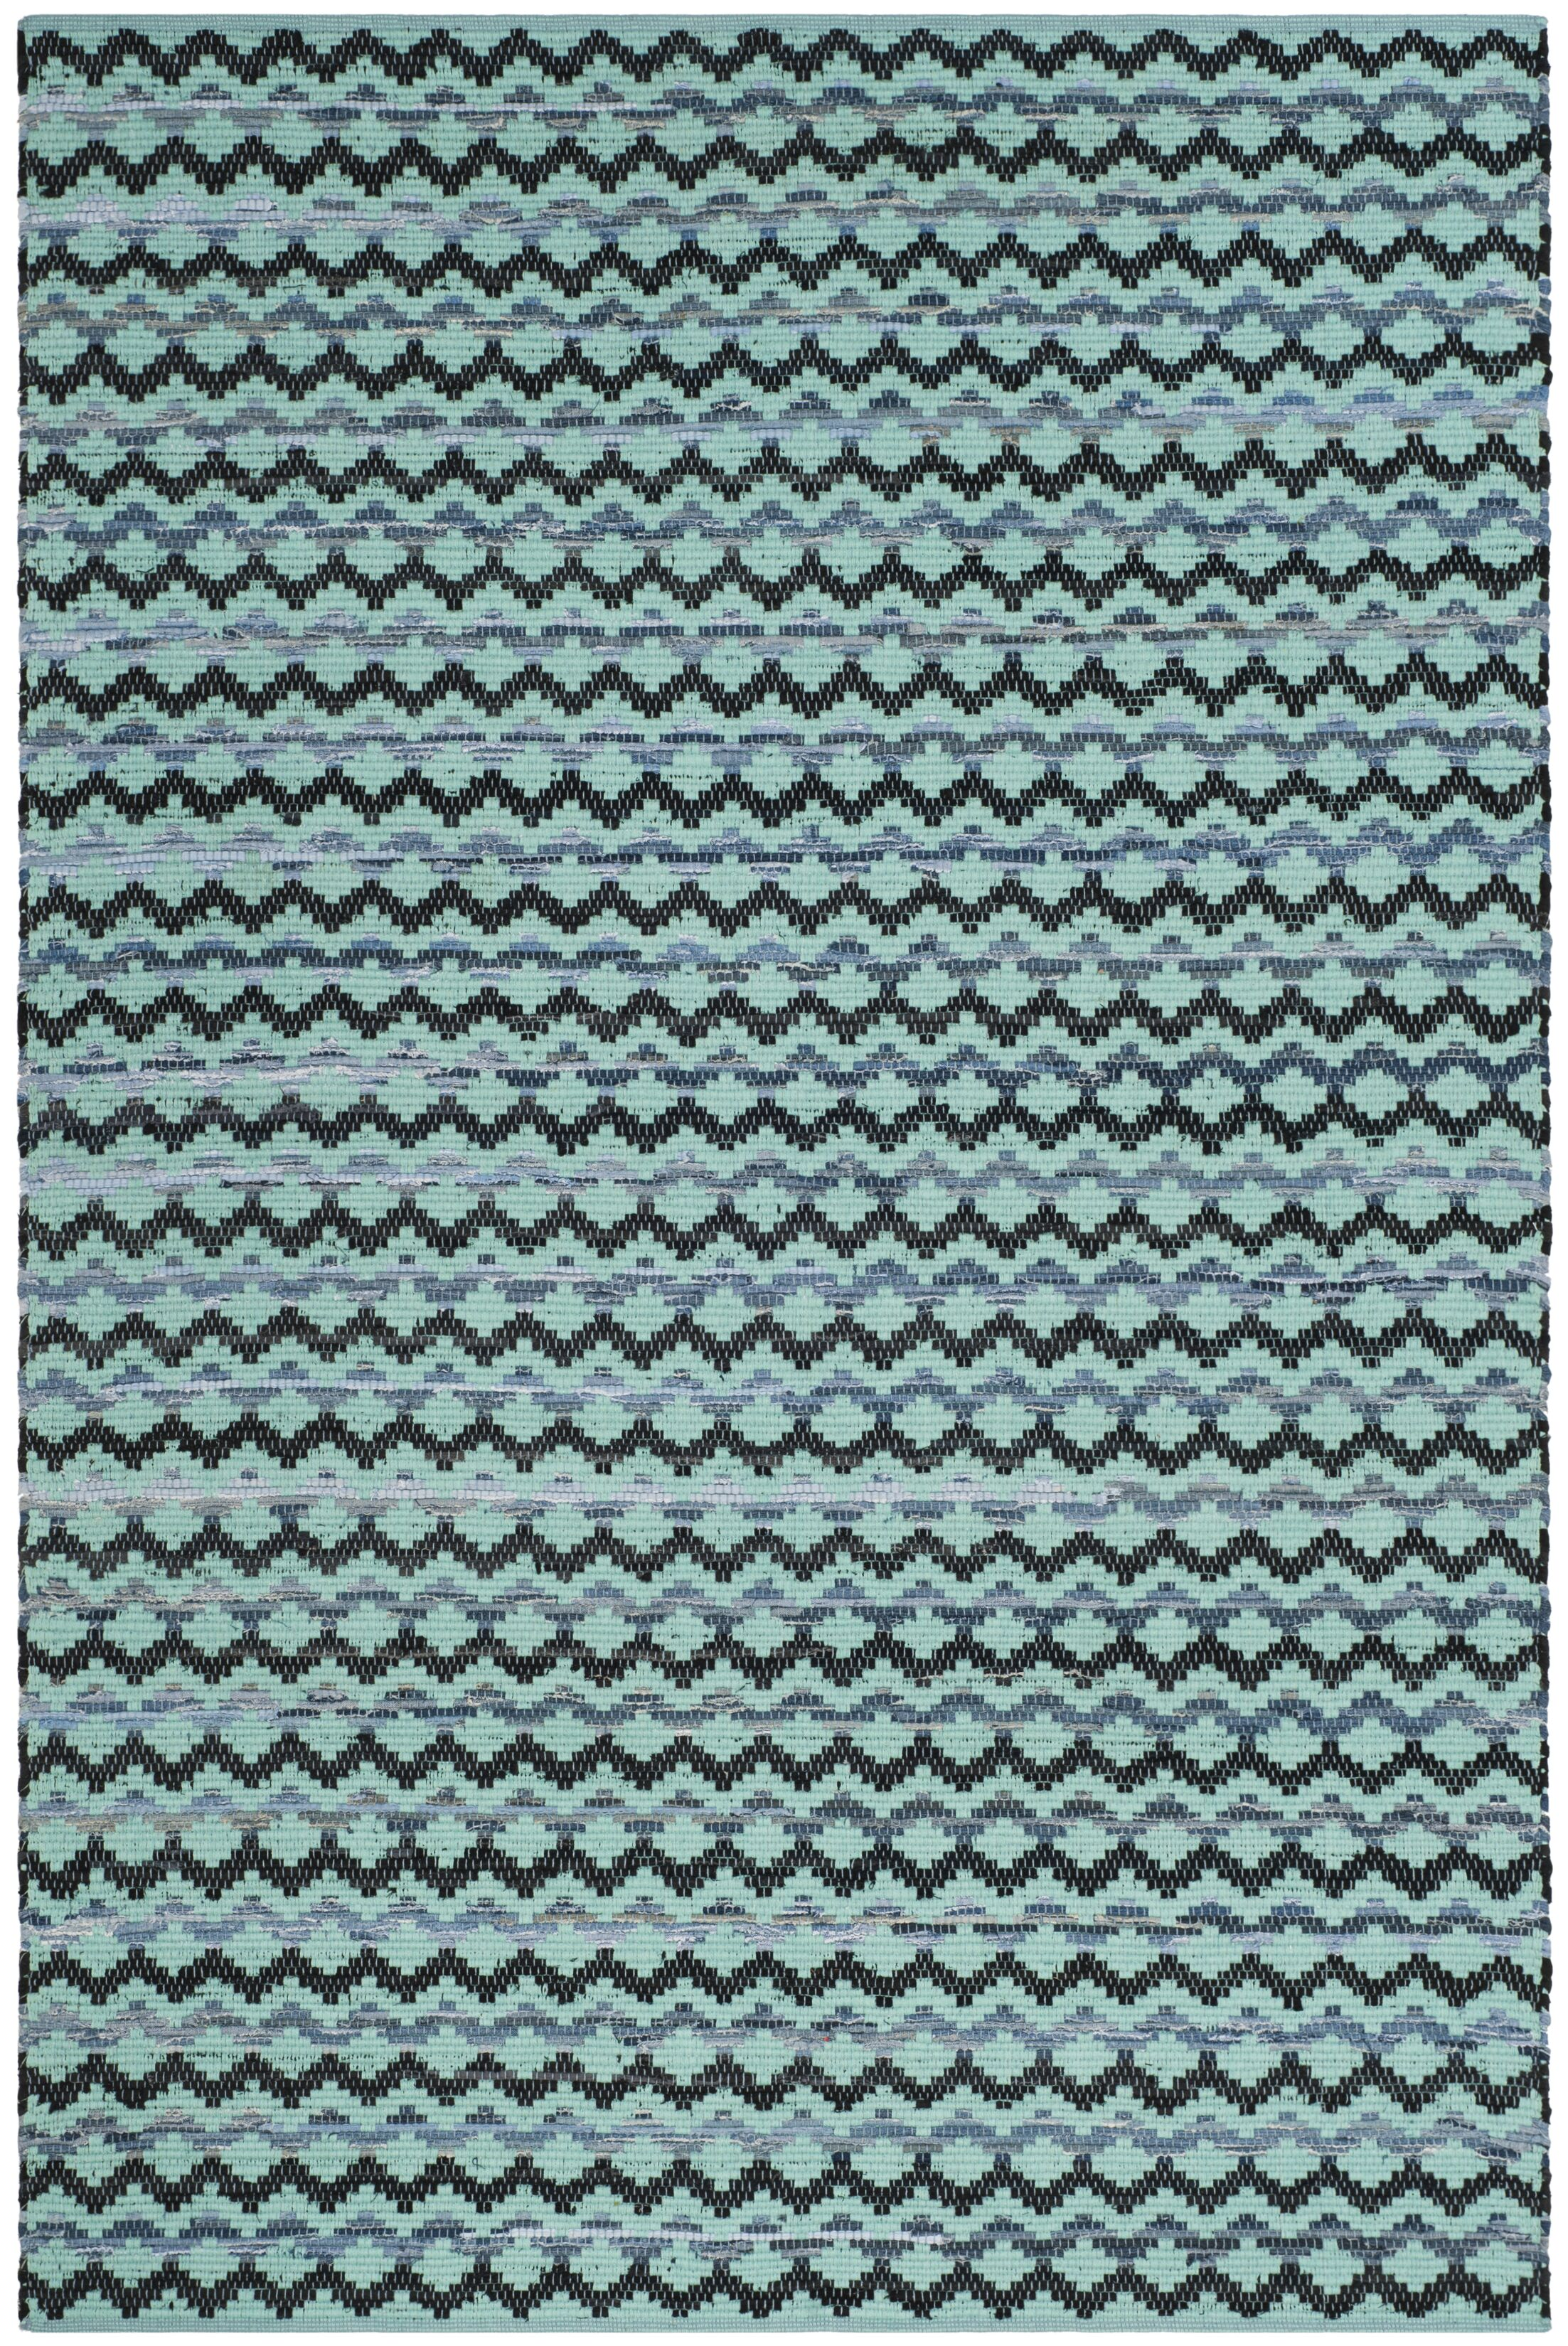 One-of-a-Kind Zoltán Hand-Woven Cotton Turquoise Area Rug Rug Size: Square 6'